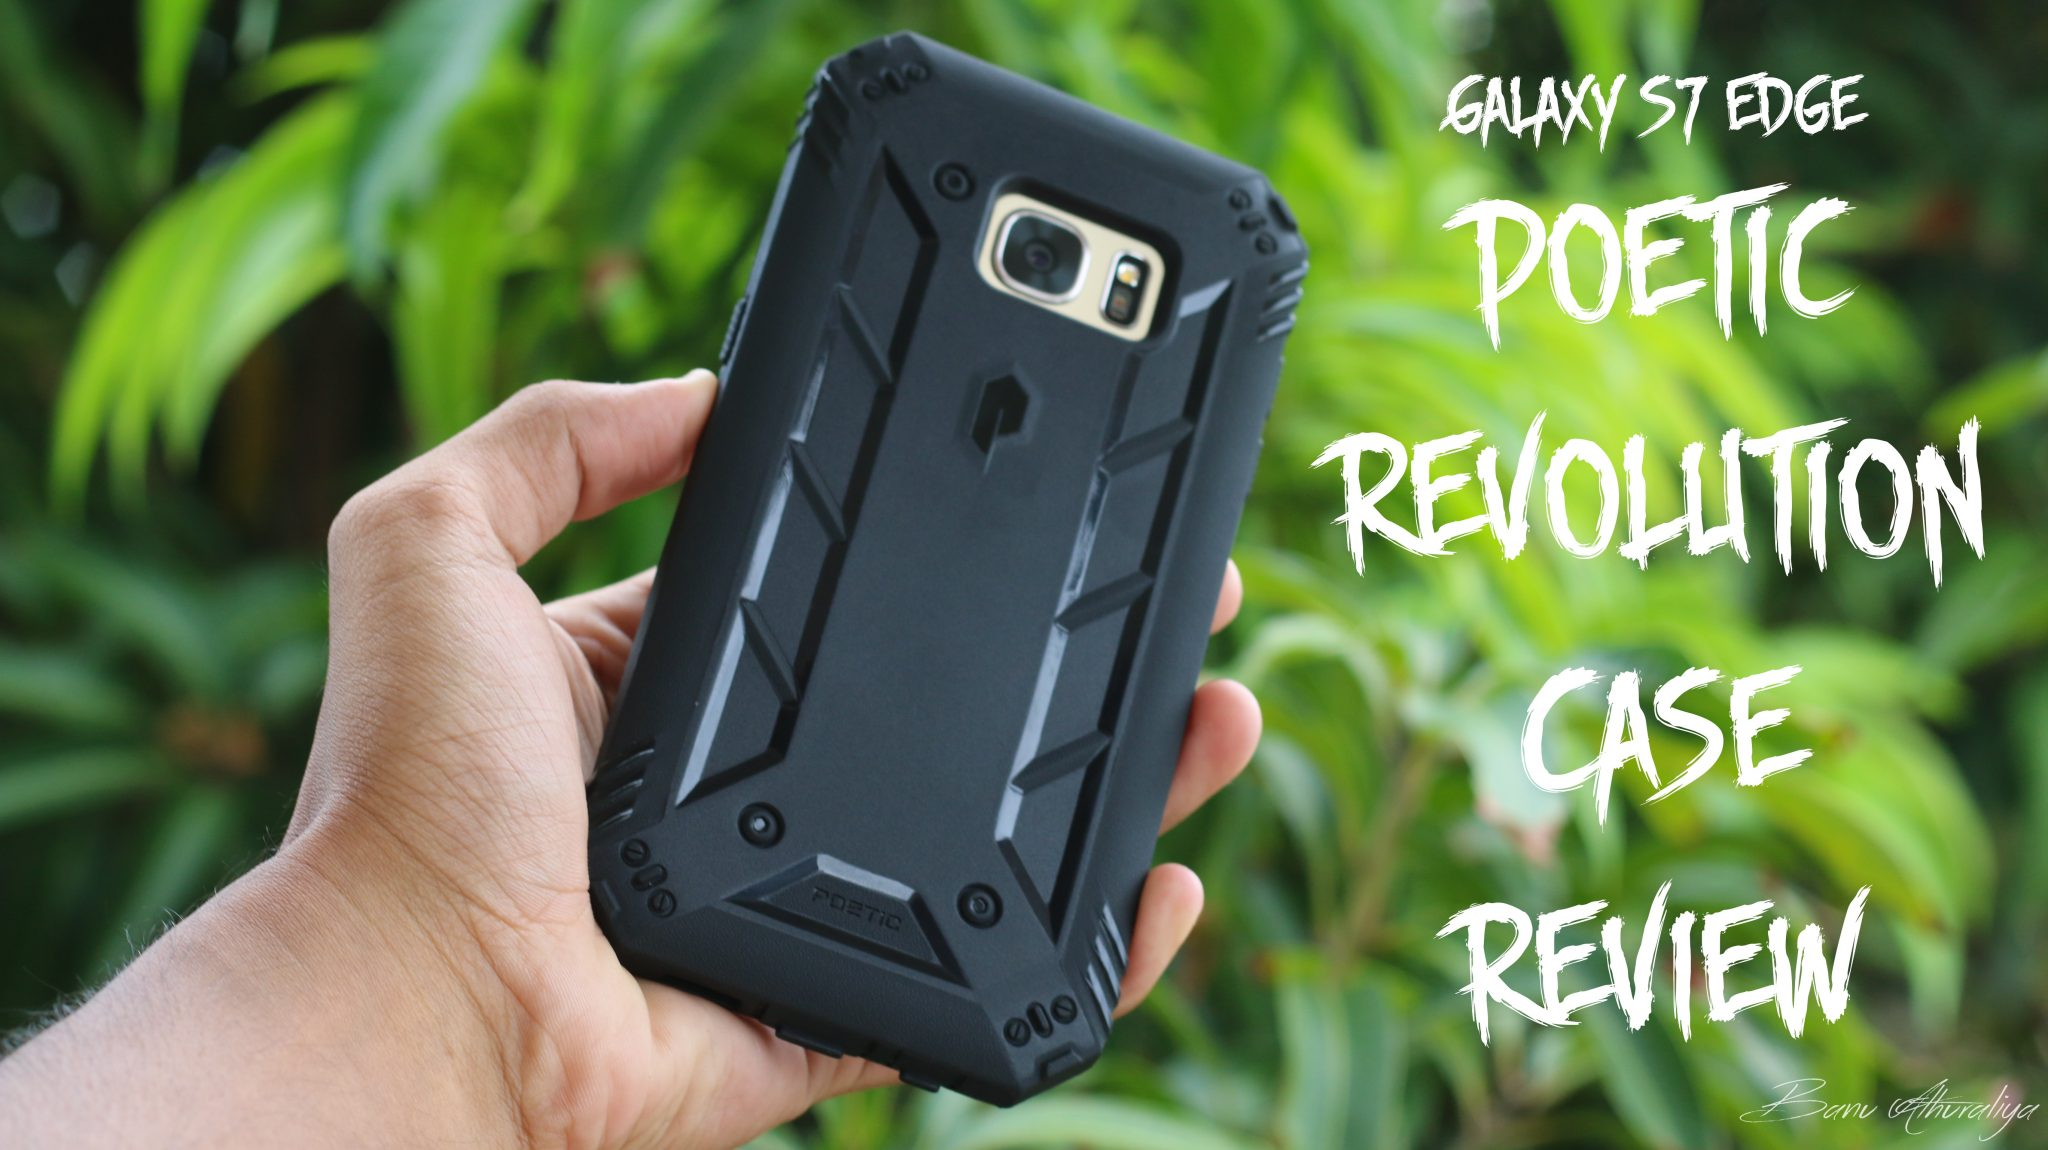 poetic-galaxy-s7-edge-review-andro-dollar